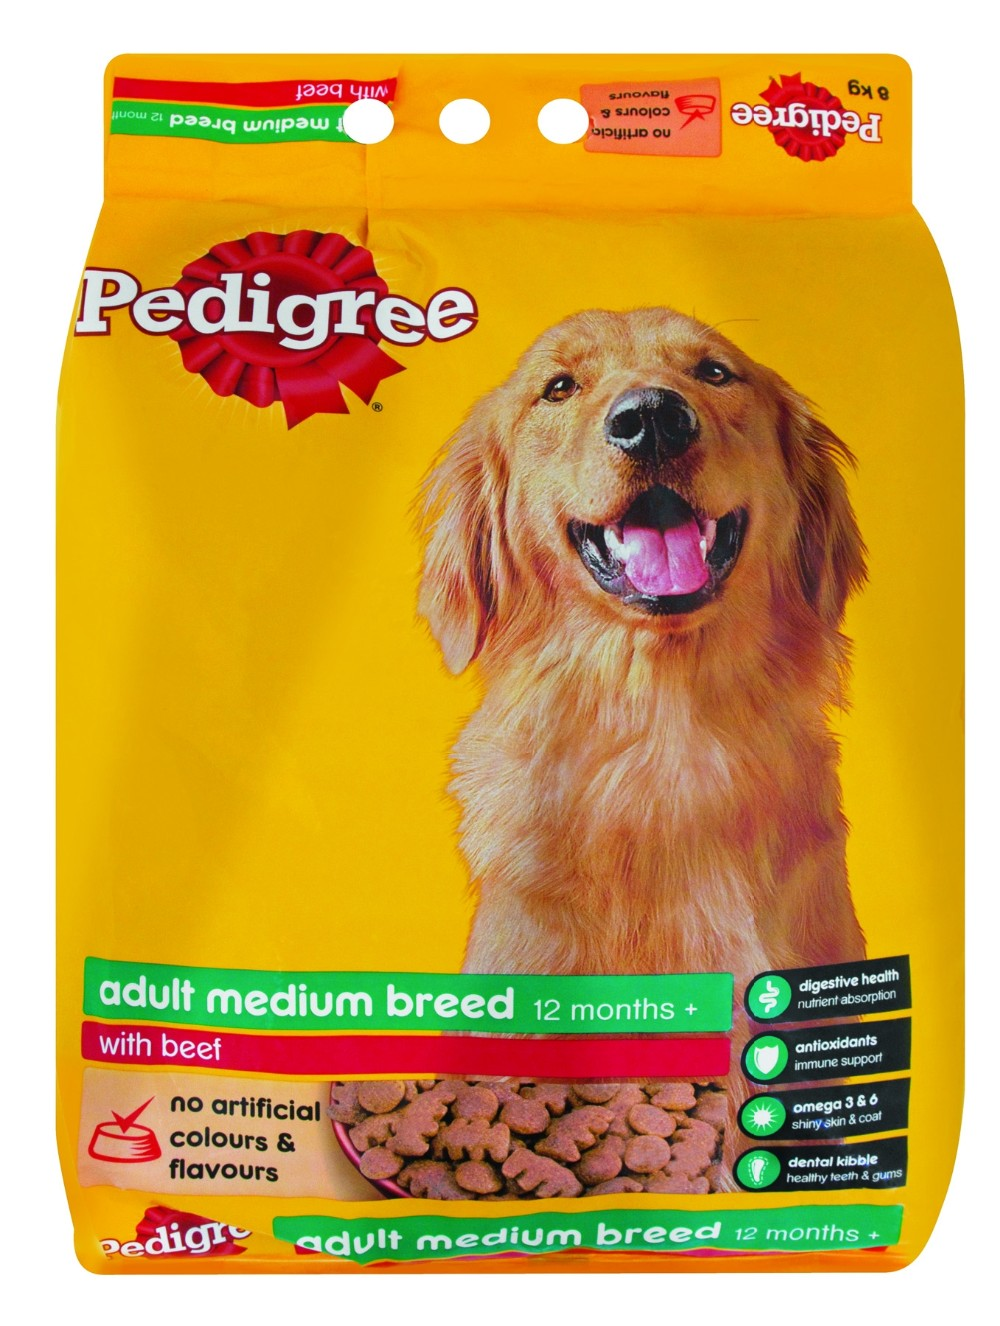 Colorful Packaging Limited plastic standing up dog food bags